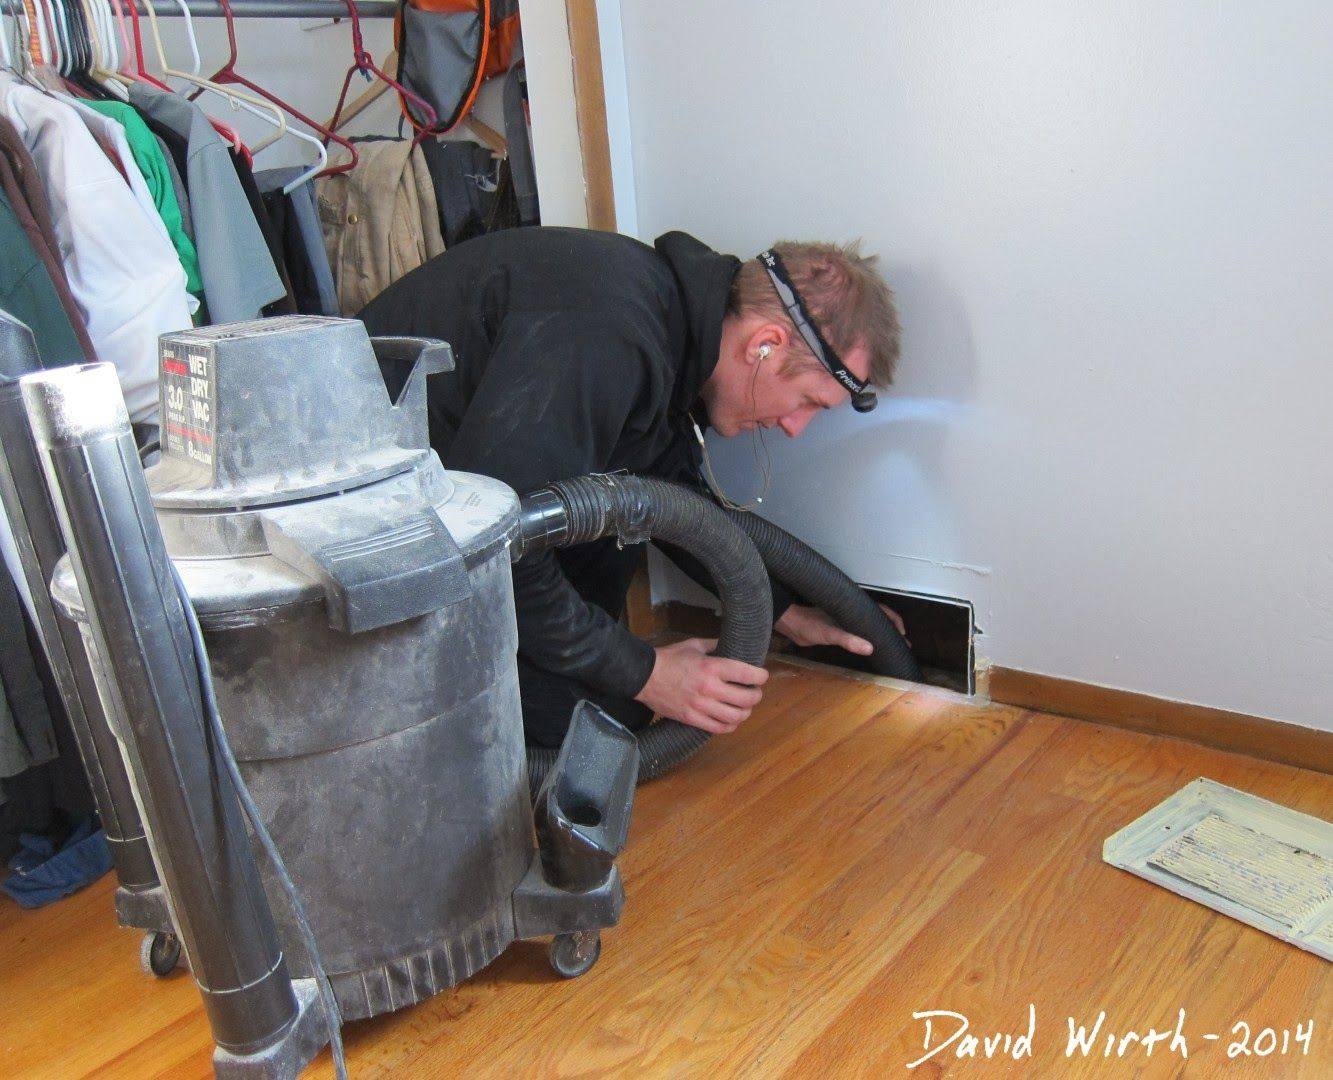 #996732 Best 25  Clean Air Ducts Ideas On Pinterest Duct  Highly Rated 1999 Cleaning Out Air Ducts wallpapers with 1333x1080 px on helpvideos.info - Air Conditioners, Air Coolers and more